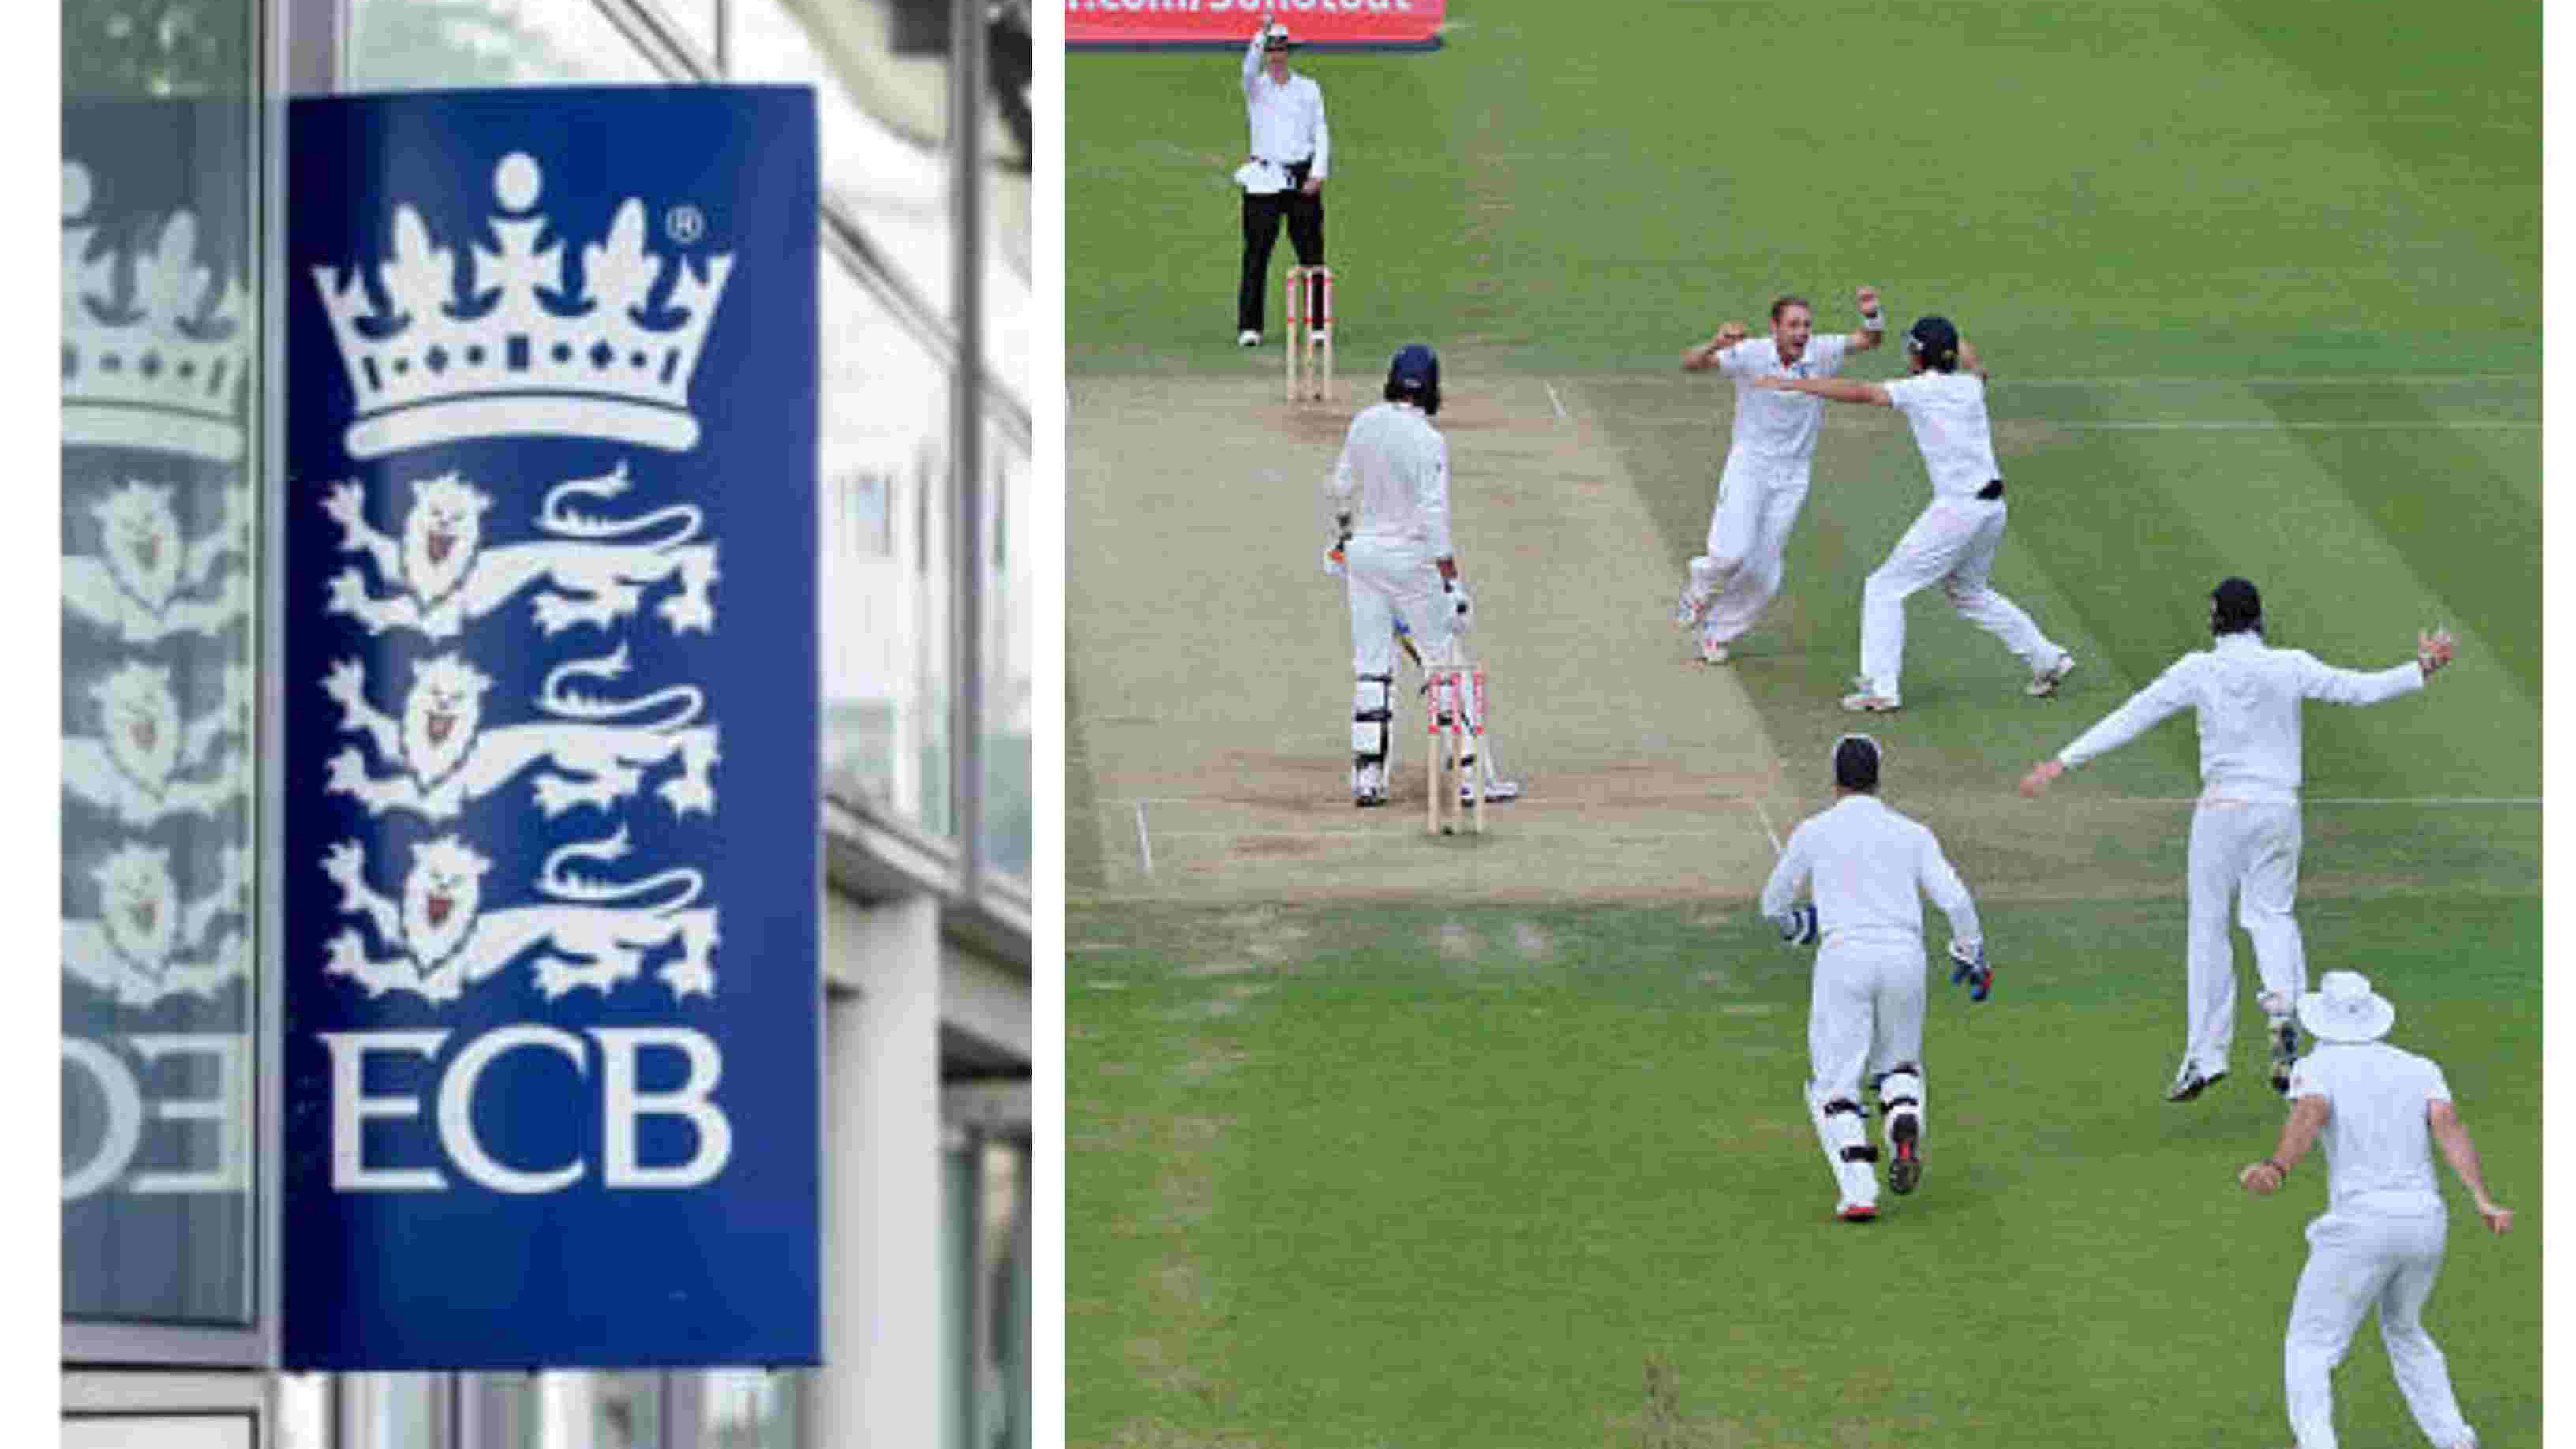 ECB rejects spot-fixing claims on England players in the latest Al Jazeera documentary